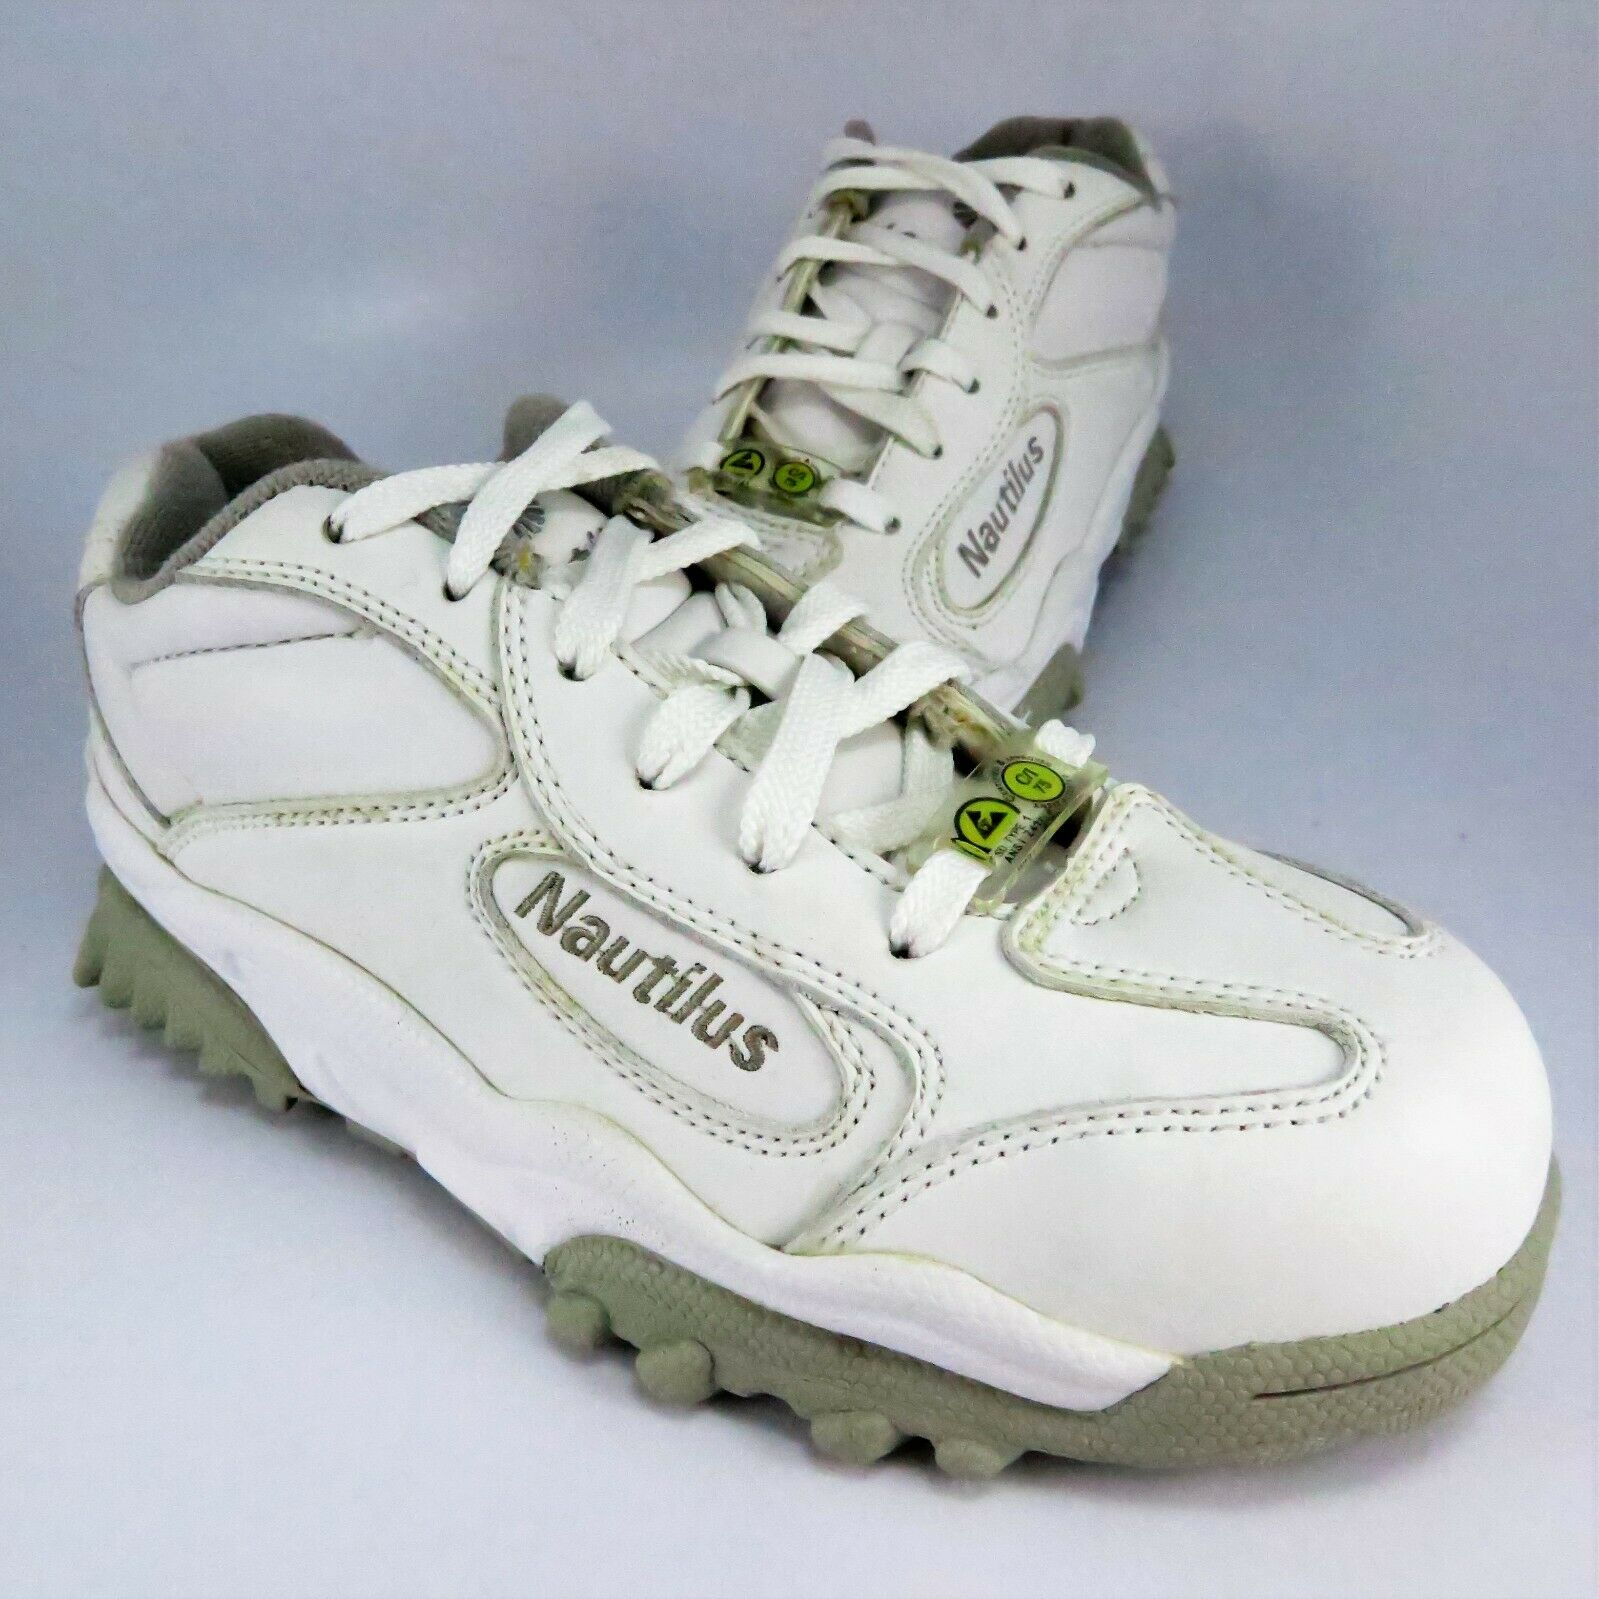 Nautilus N1351 Steel Toe SD Safety Work shoes Womens Size 5.5M White Leather